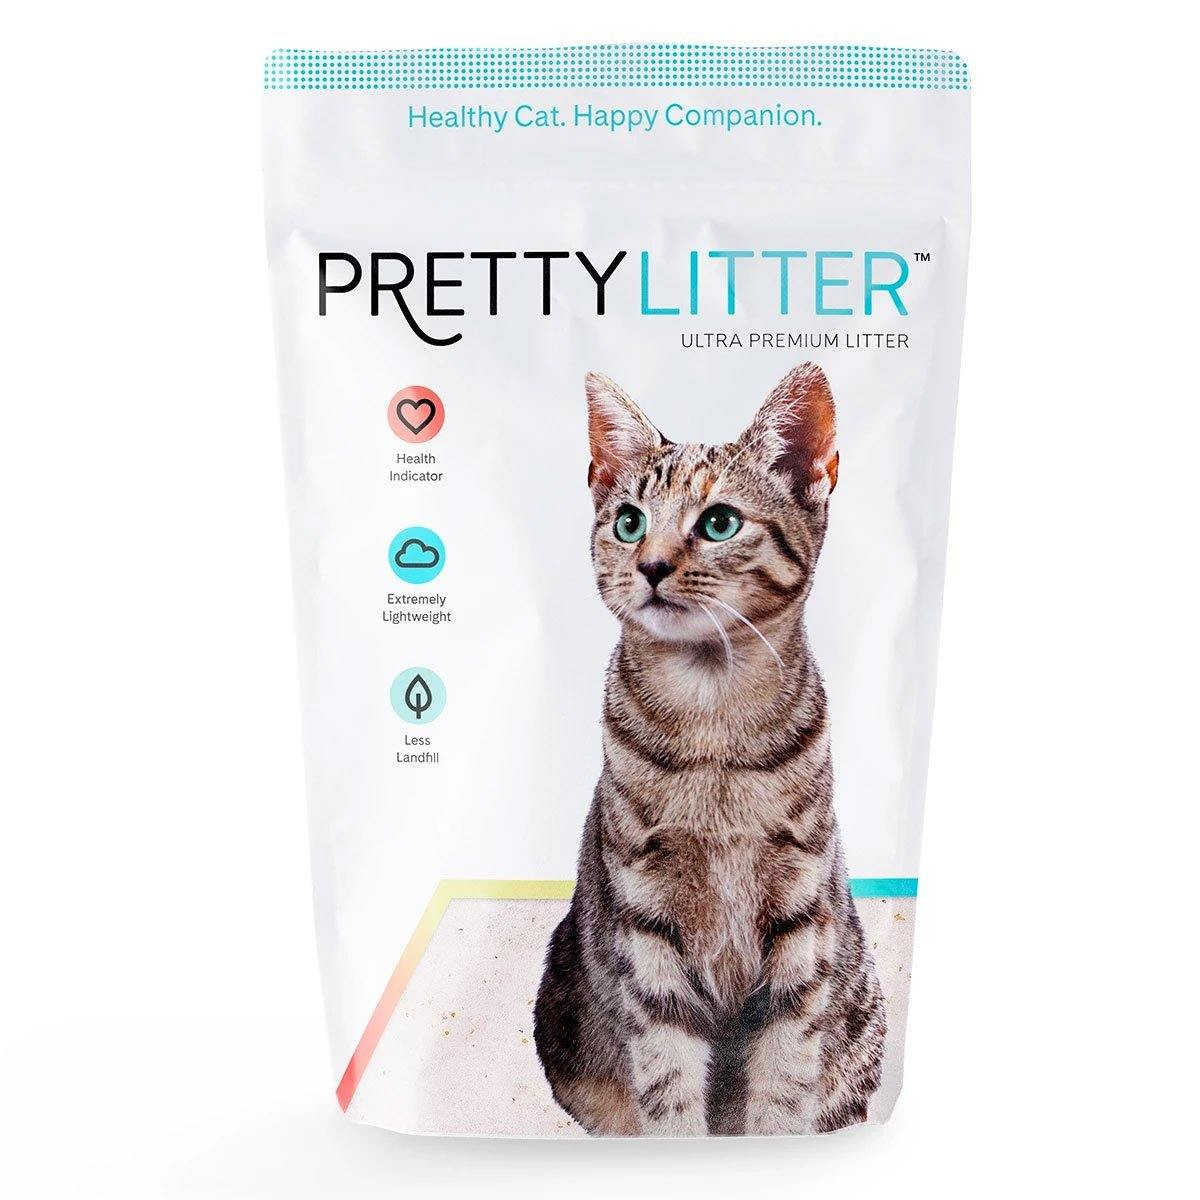 3 Months Supply of PrettyLitter for Two Cats